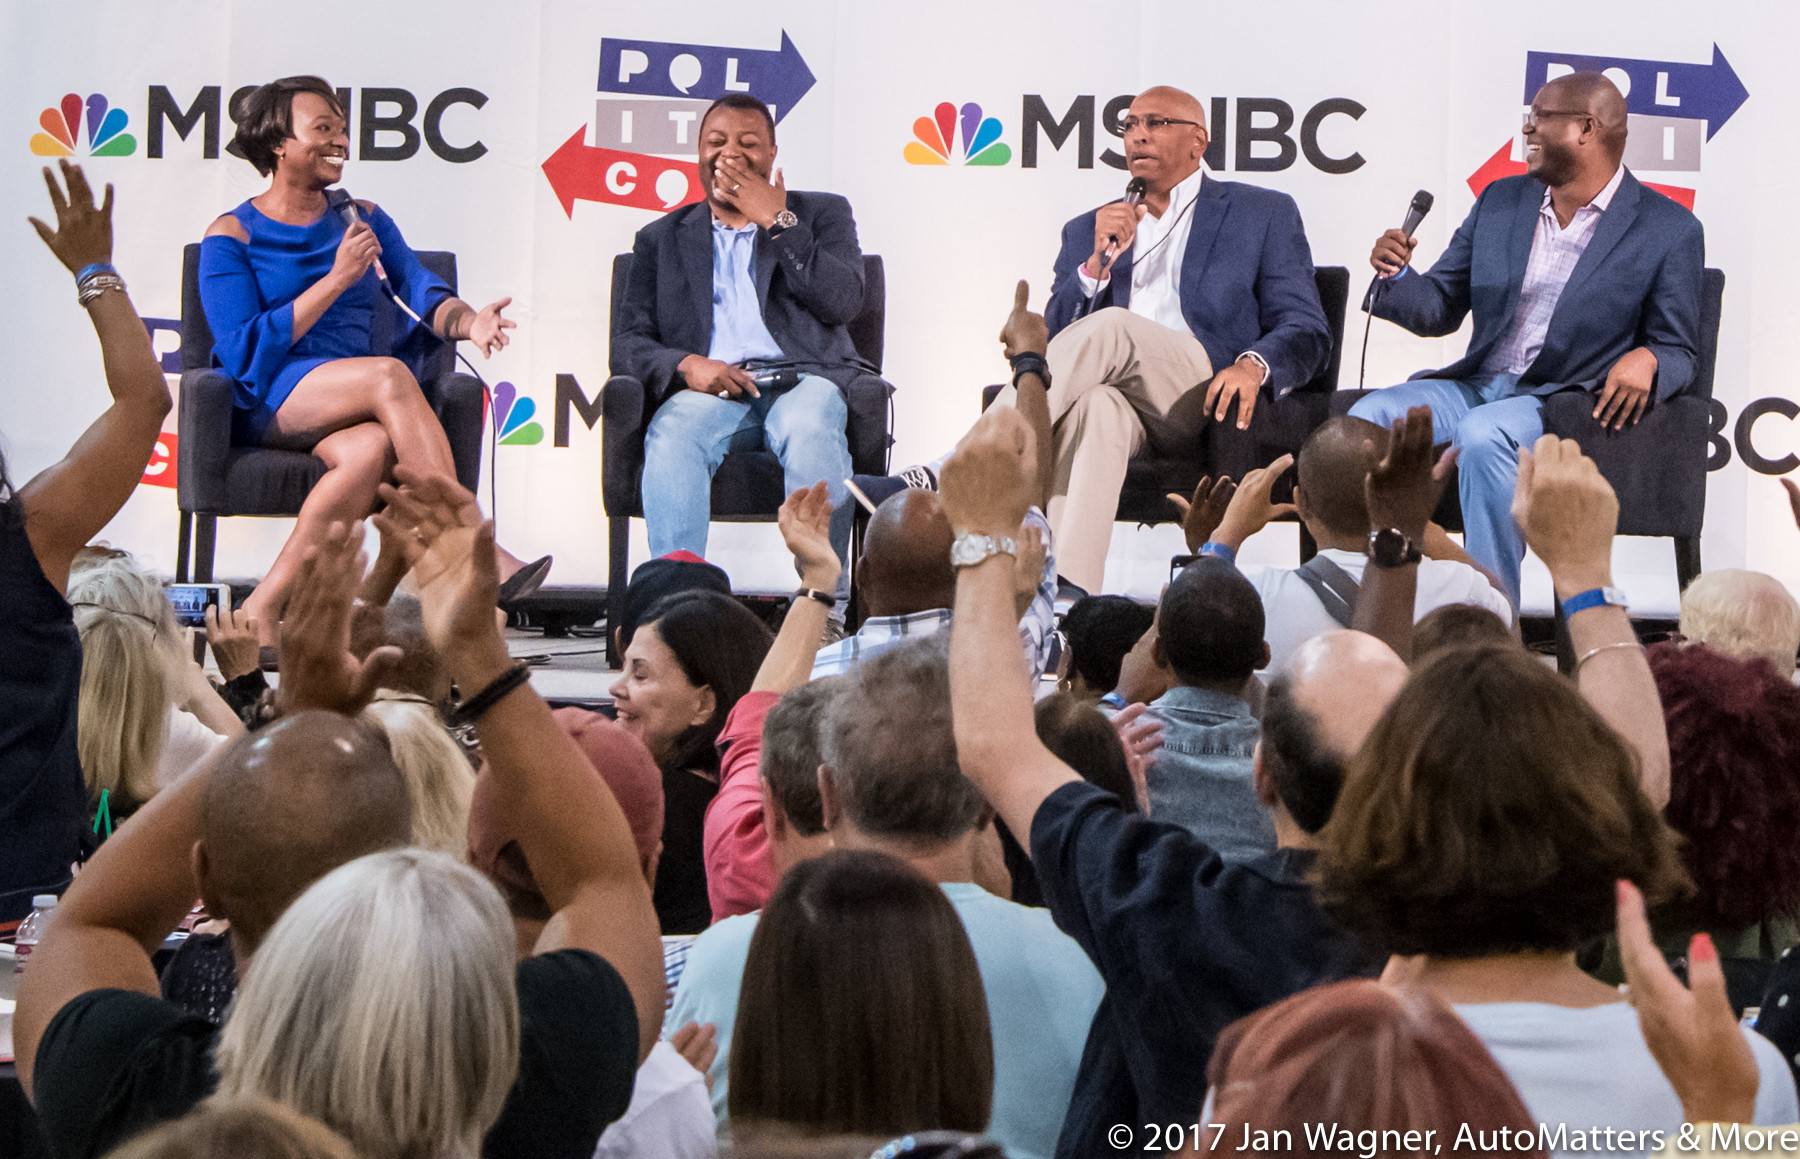 Joy Reid, Krystal Ball, Malcolm Nance & Michael Steele with their appreciative and enthusiastic audience.